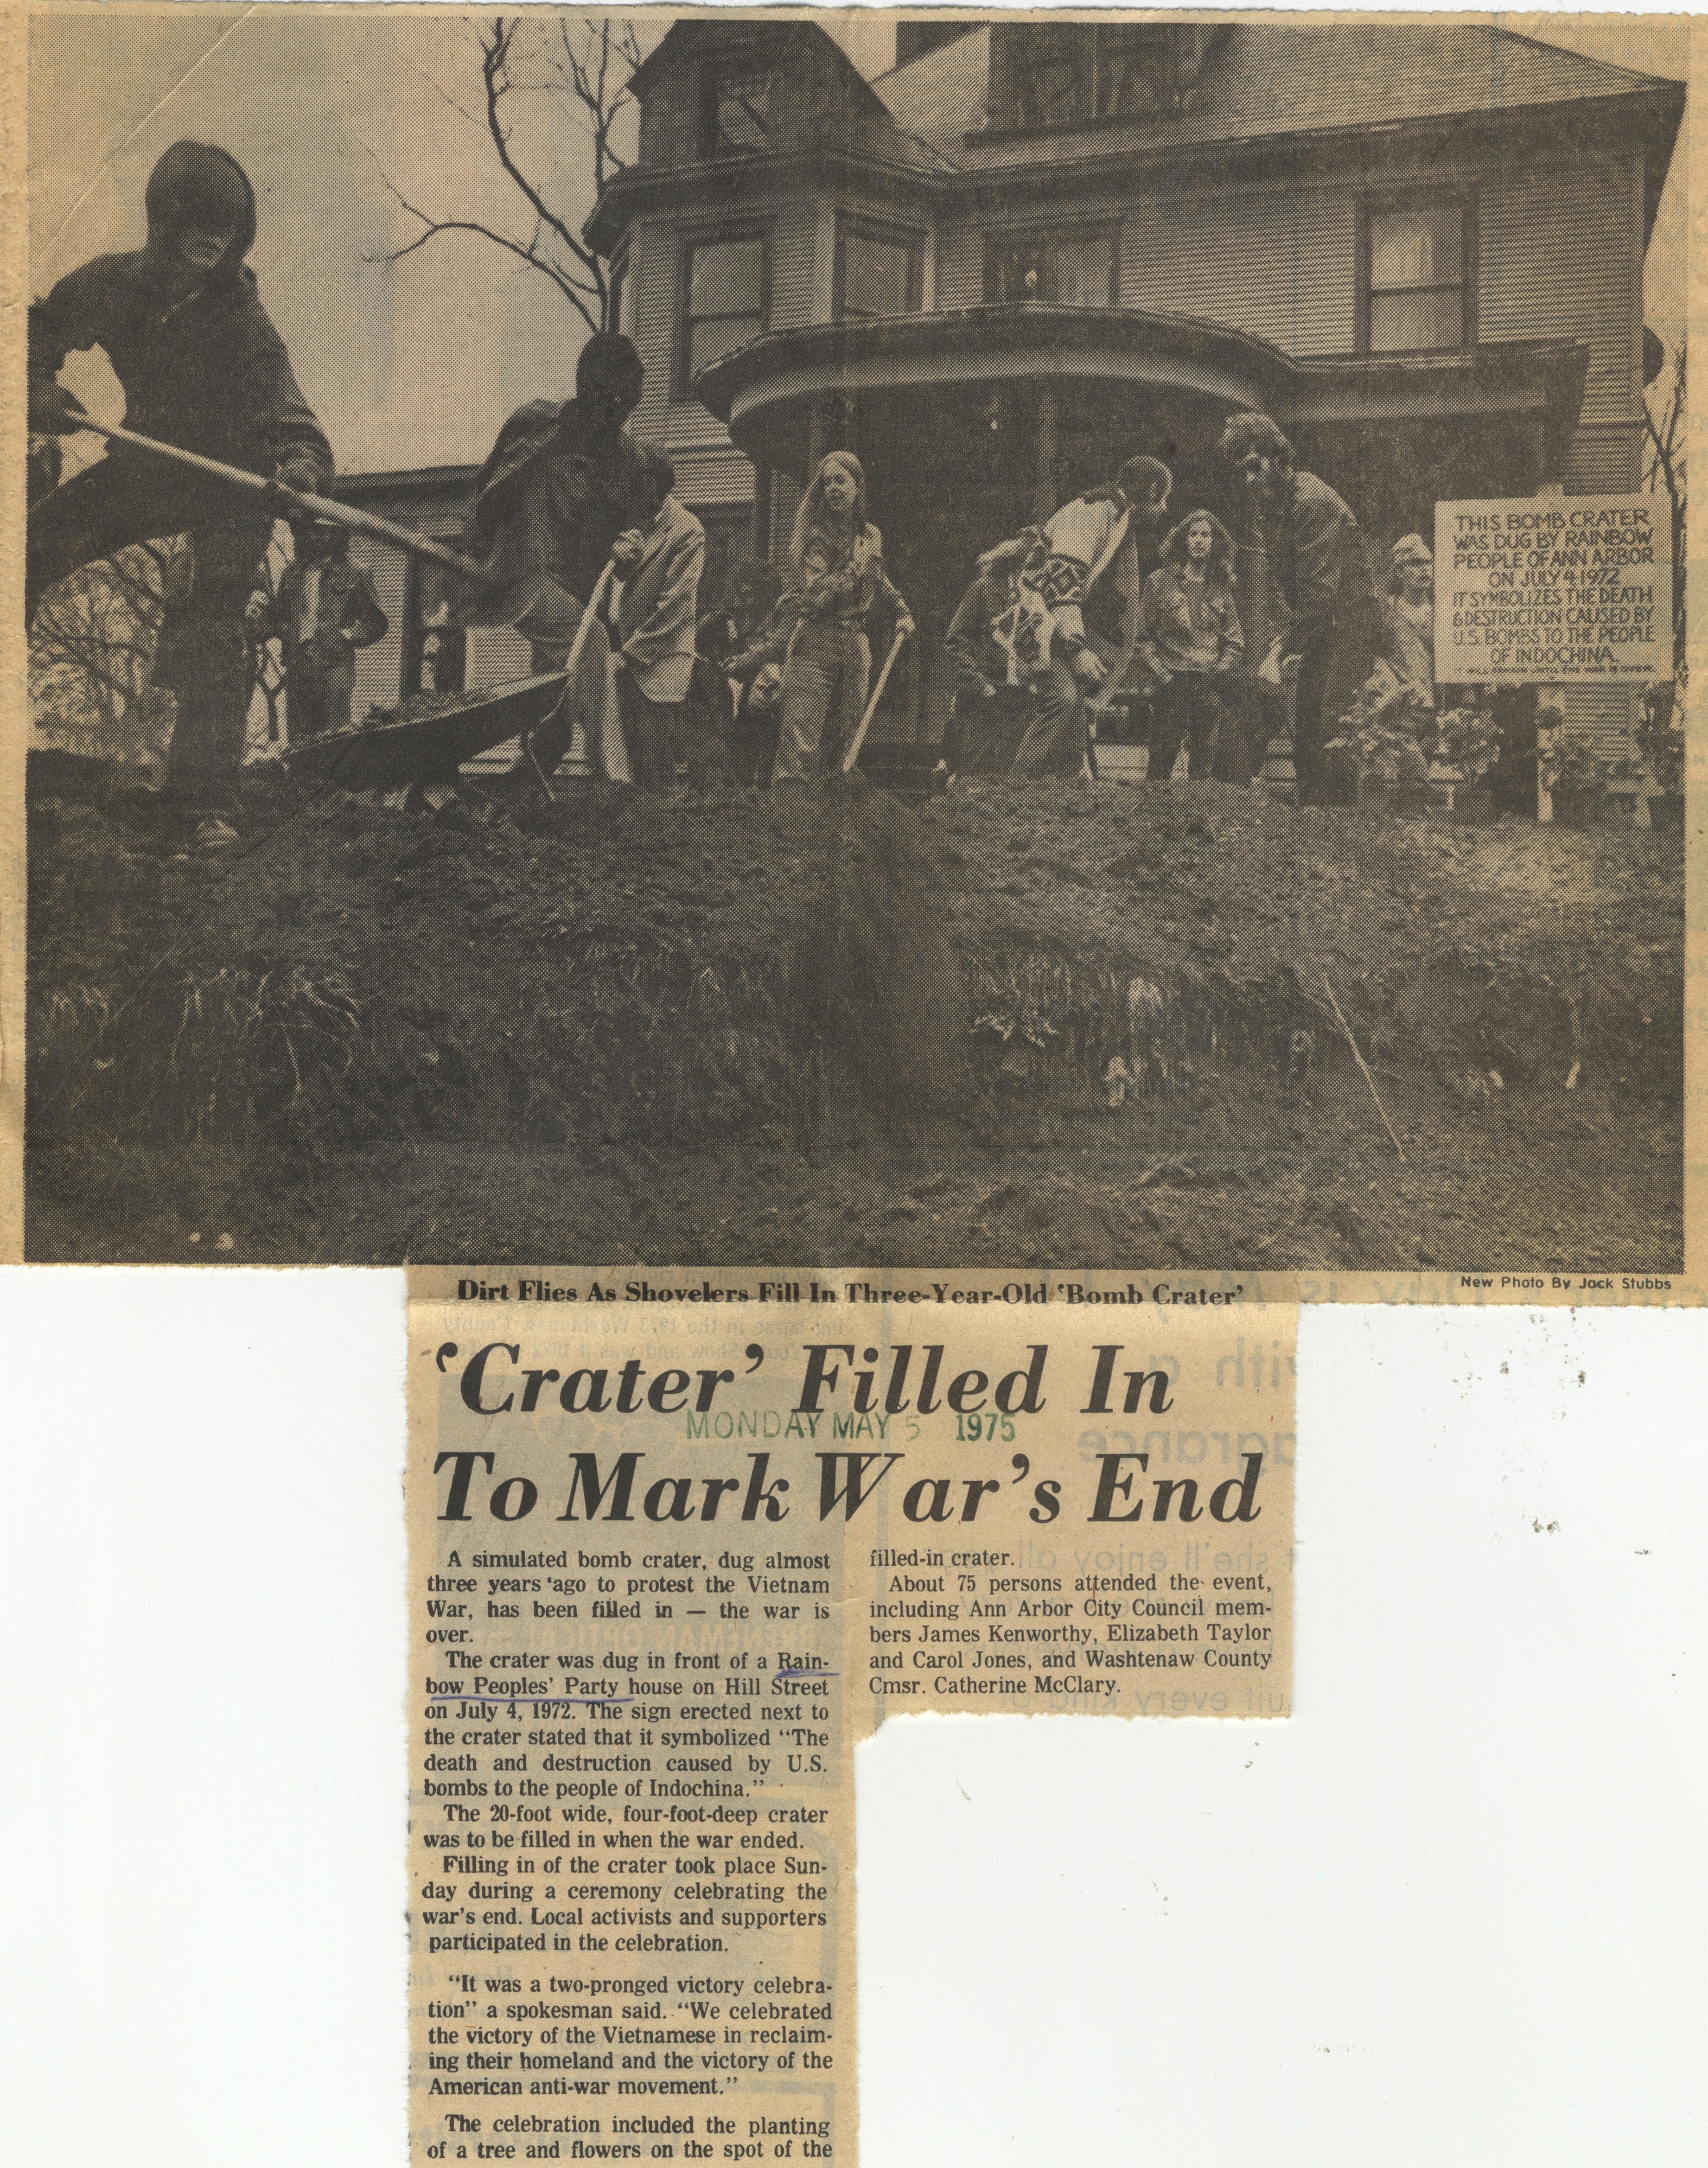 'Crater' Filled in To Mark War's End image